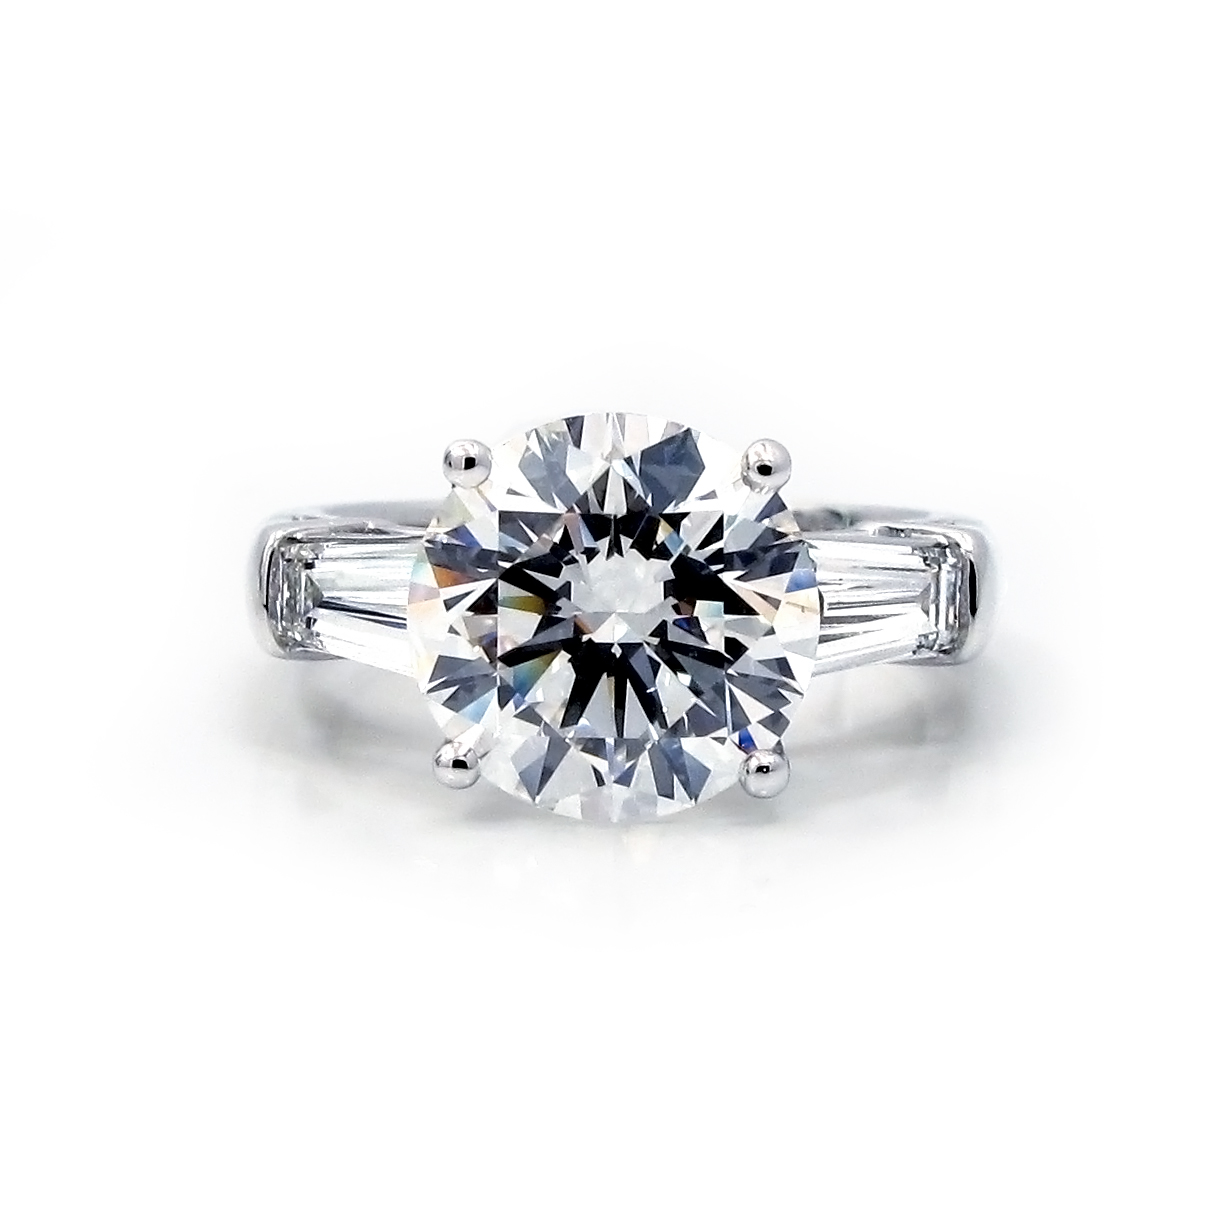 Engagement Ring With Round And Tapered Baguettes